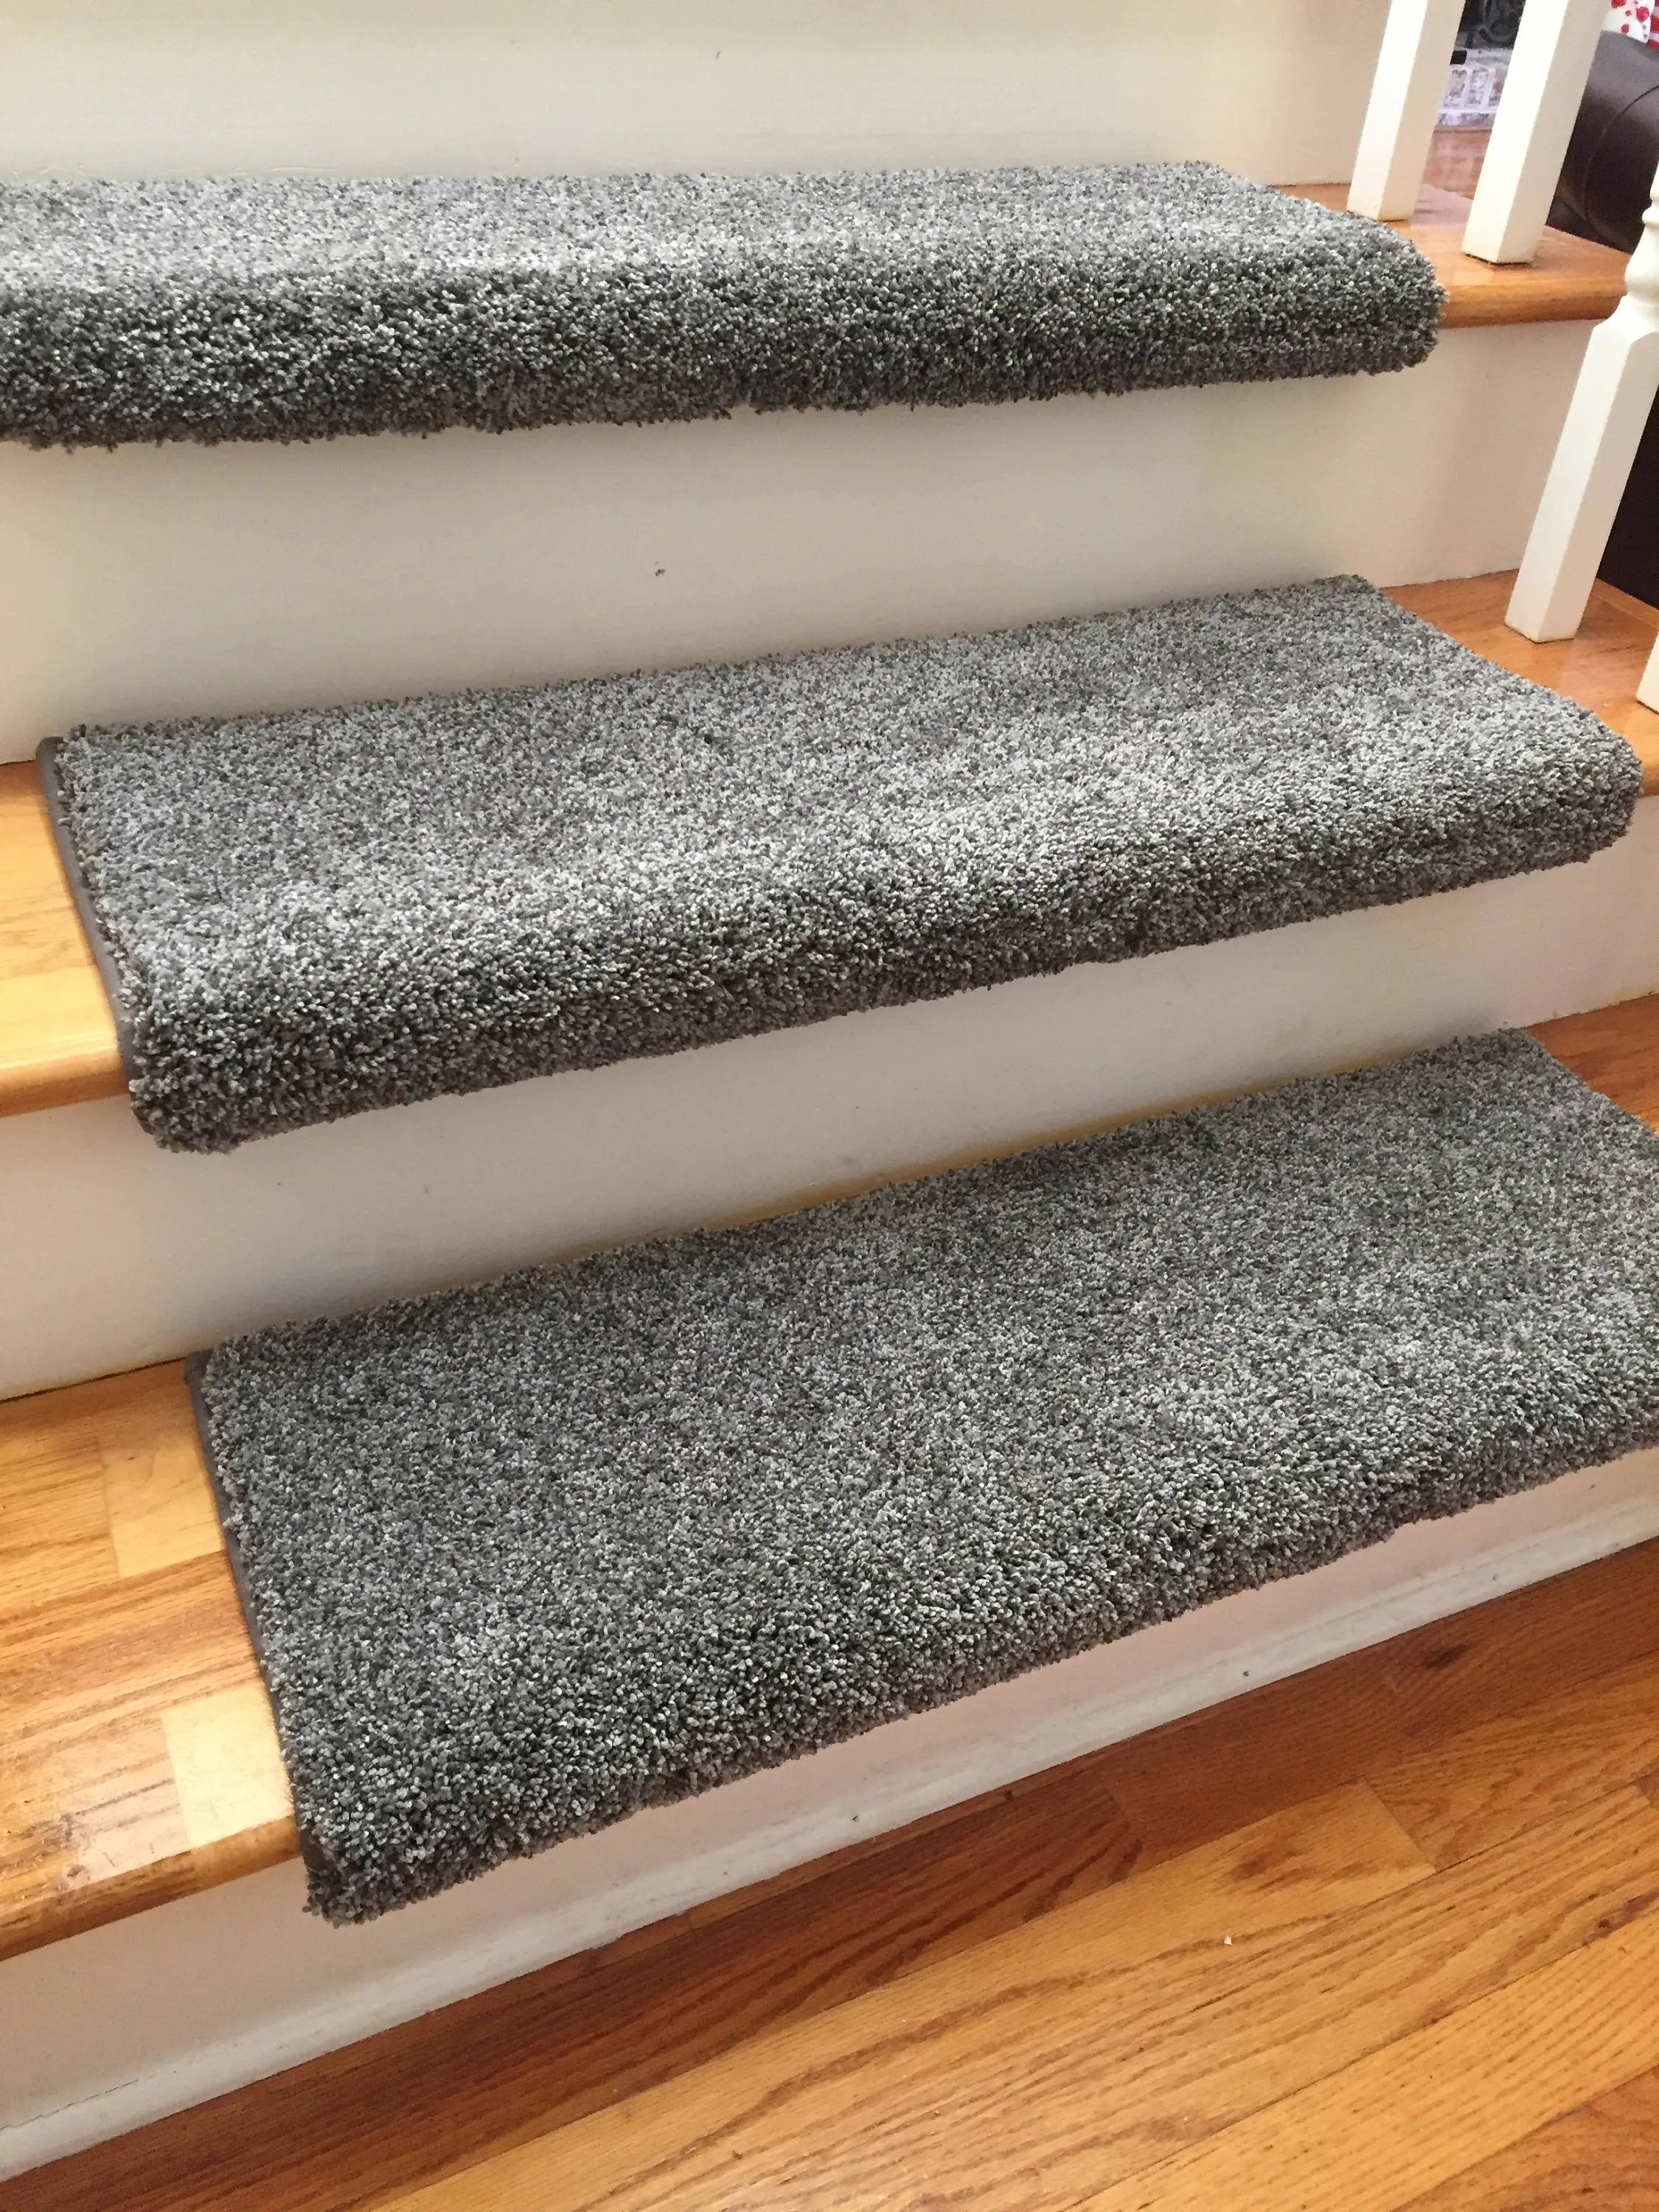 Dazzling Magma Grey Gray Plush Sh*G True Bullnose™ Padded Carpet | Grey Wood Stair Treads | Coloured | Marble | Low Cost | Gray Color | Porcelain